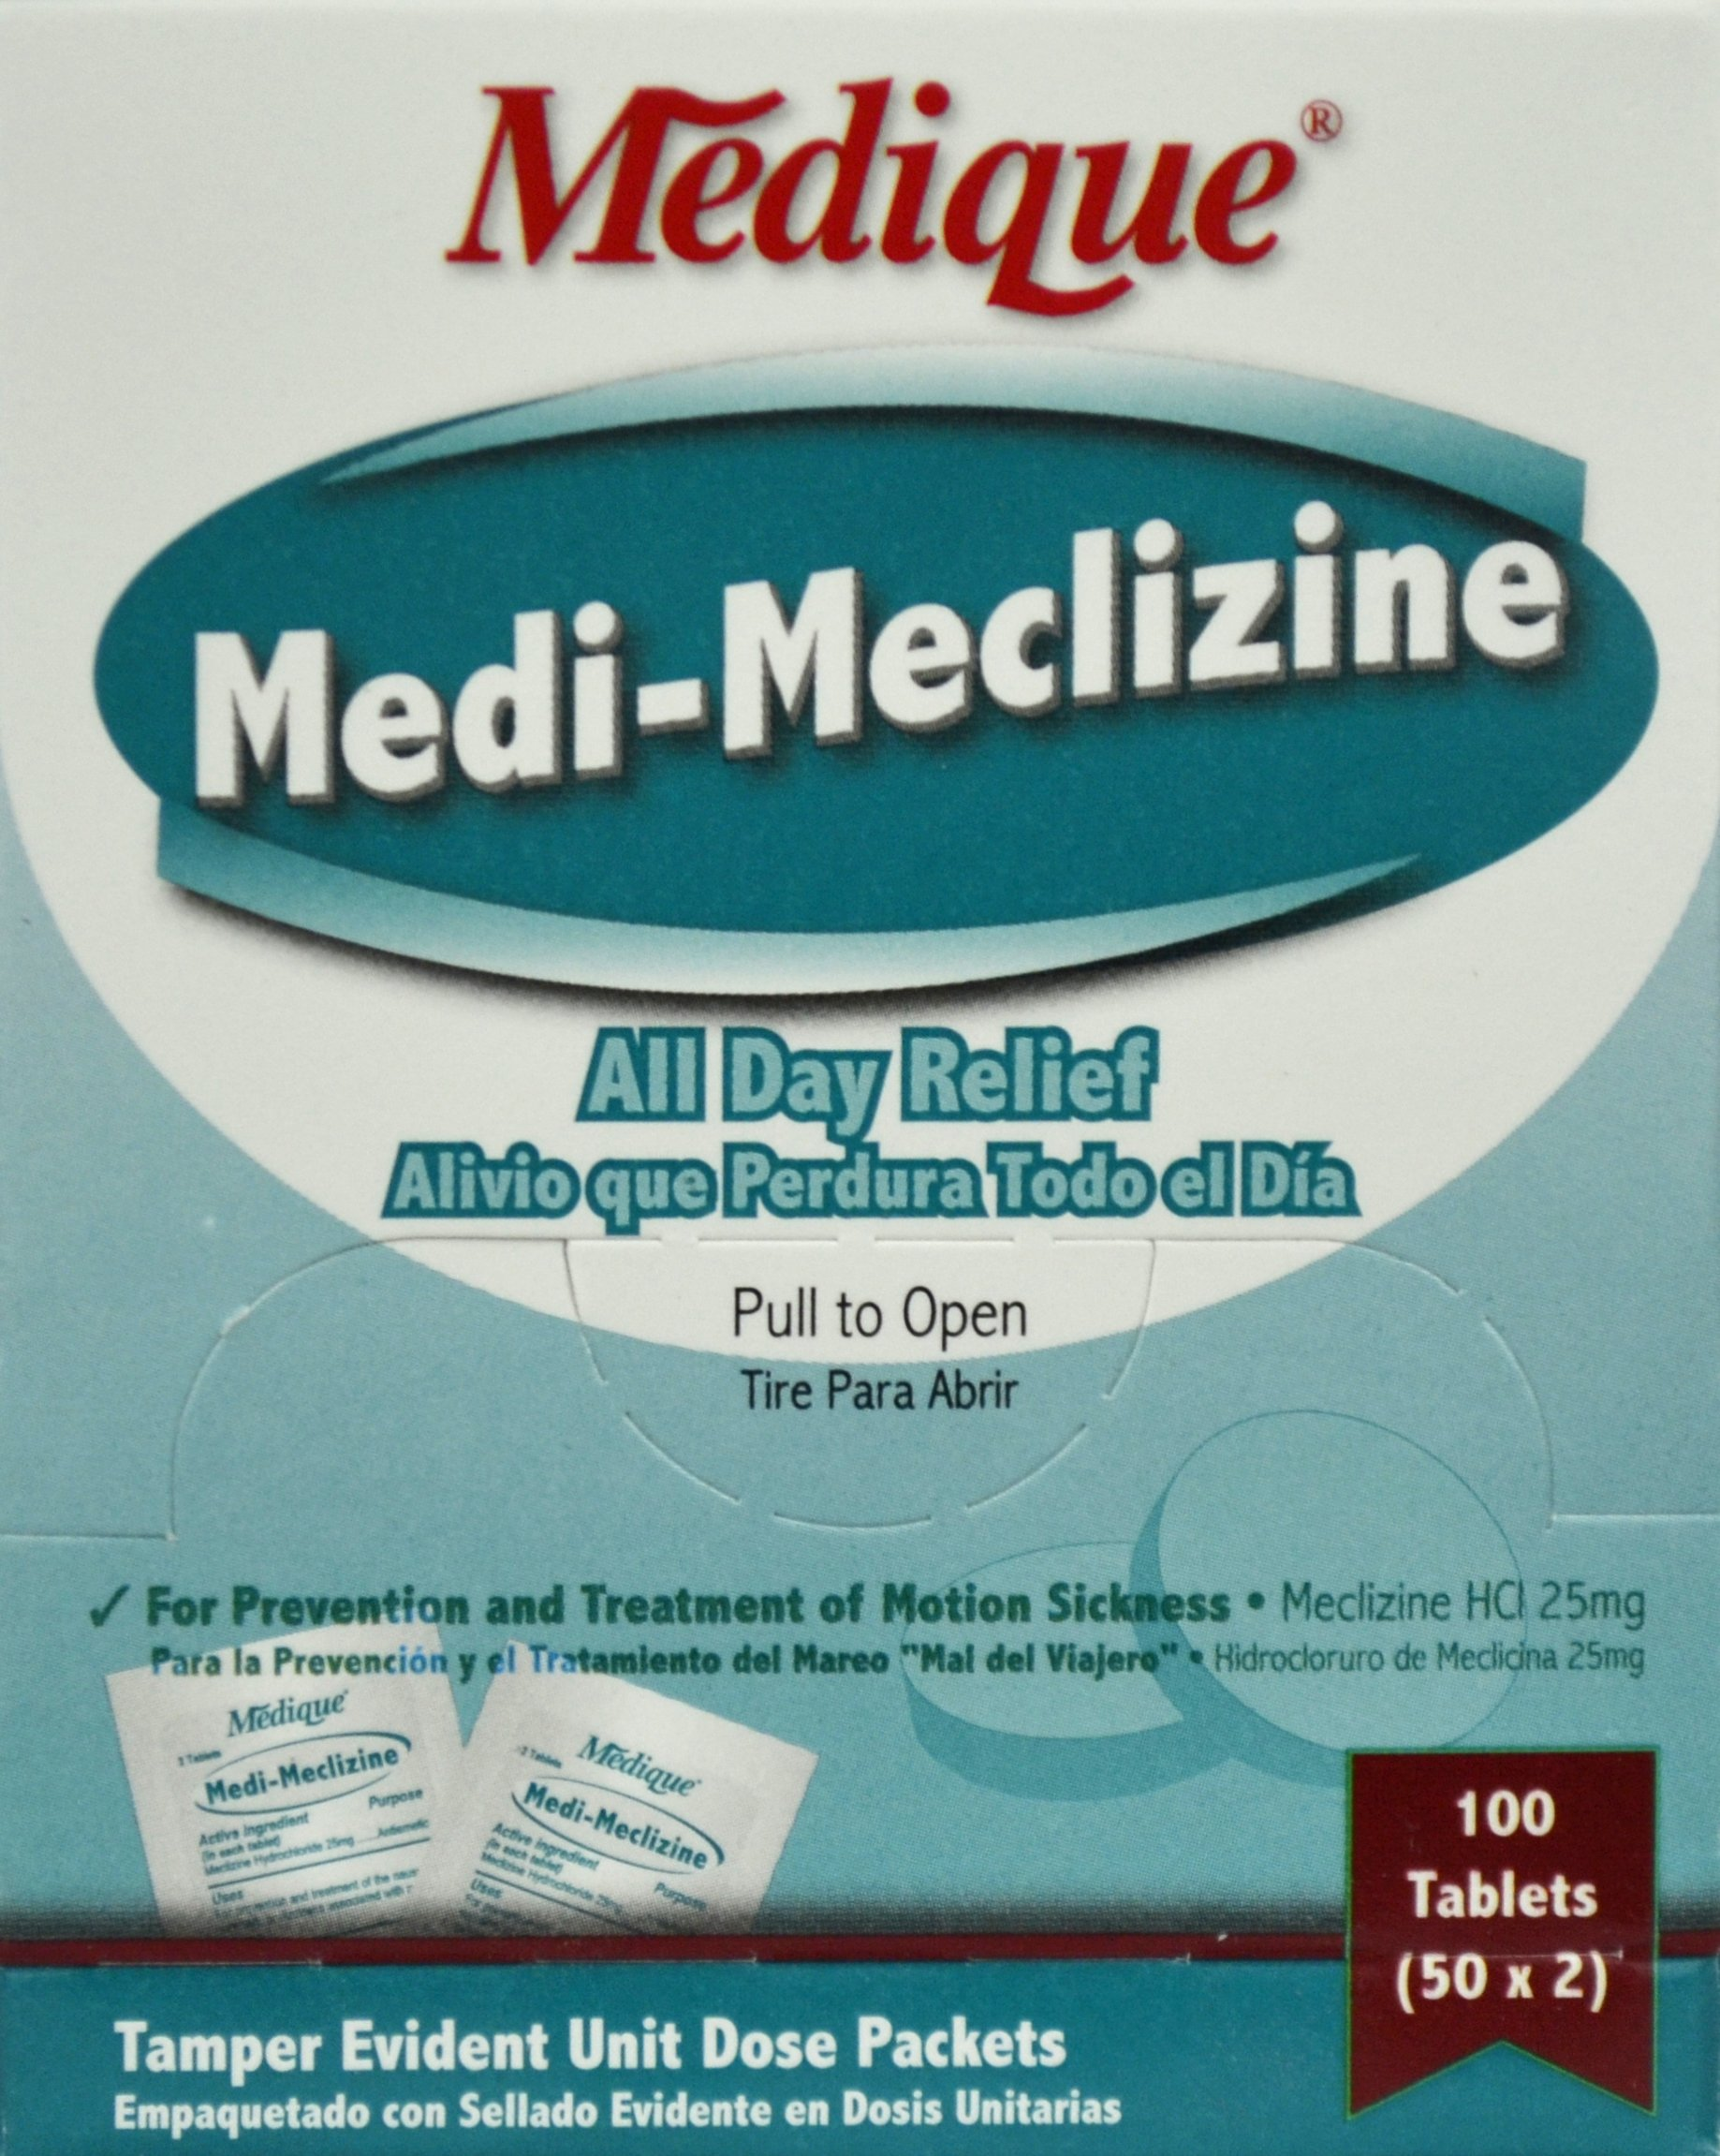 Medique Medi-Meclizine For Motion Sickness [500 Pieces] - Product Description - 2 Tablets In Travel Size Individually Sealed Packet. 25 Mg. For The Prevention And Treatment Of The Nausea, Vomiting, Or Dizziness Associated With Motion Sickness. ...